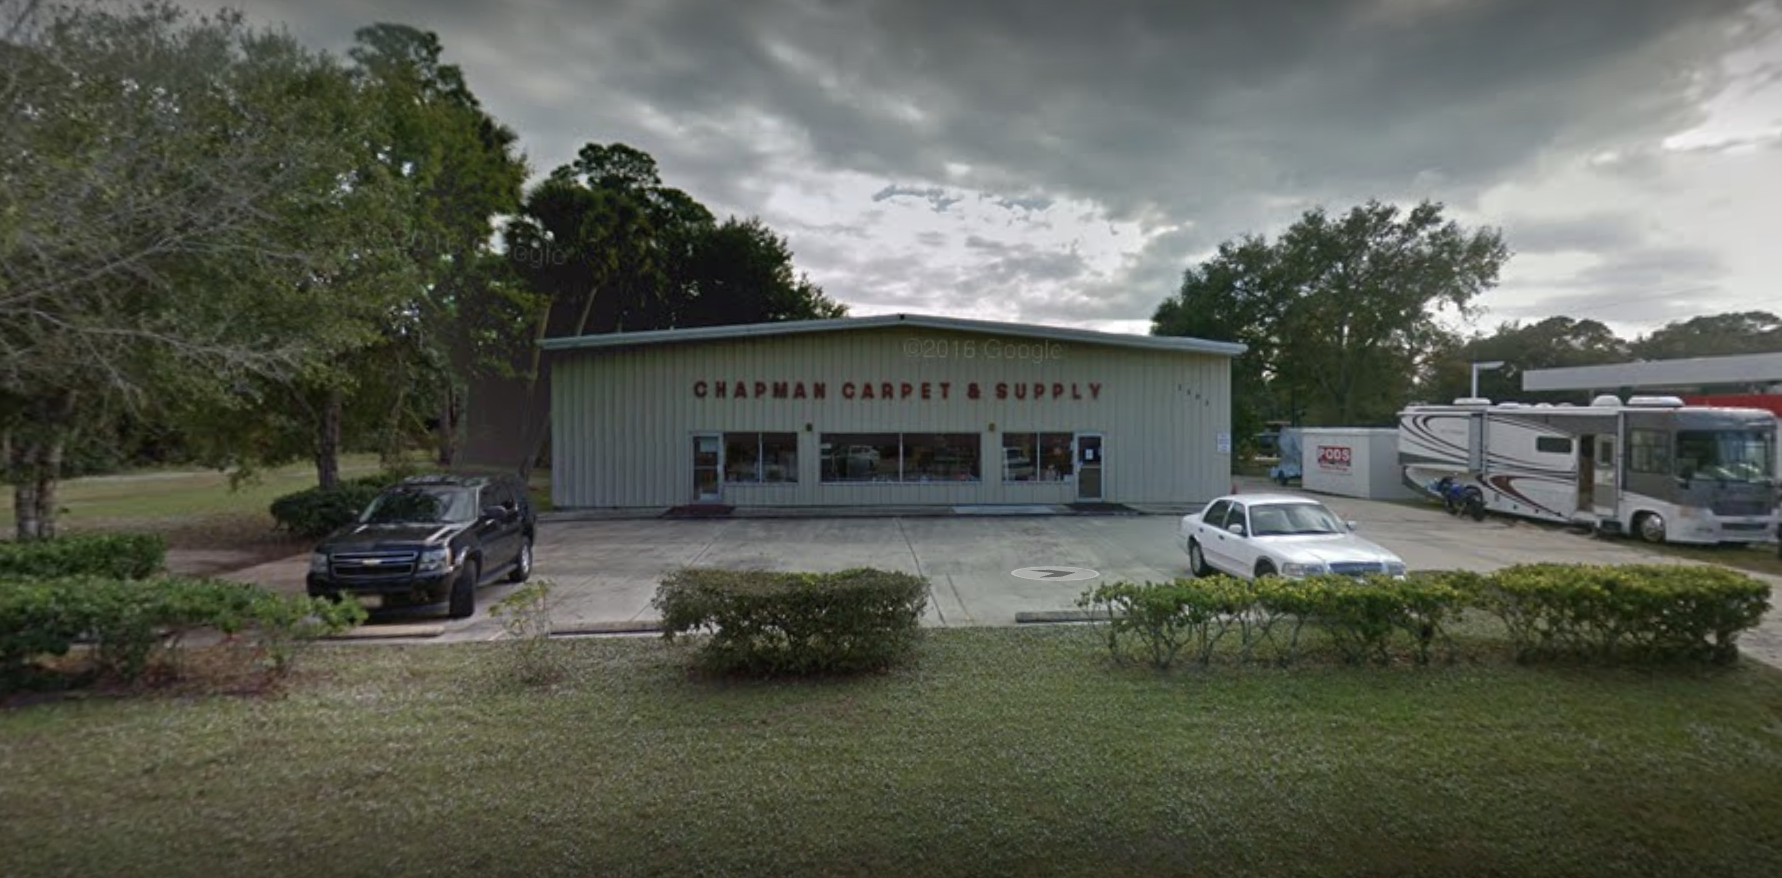 Chapman Carpet & Supply - 7103 Sheridan Rd, West Melbourne, FL 32904